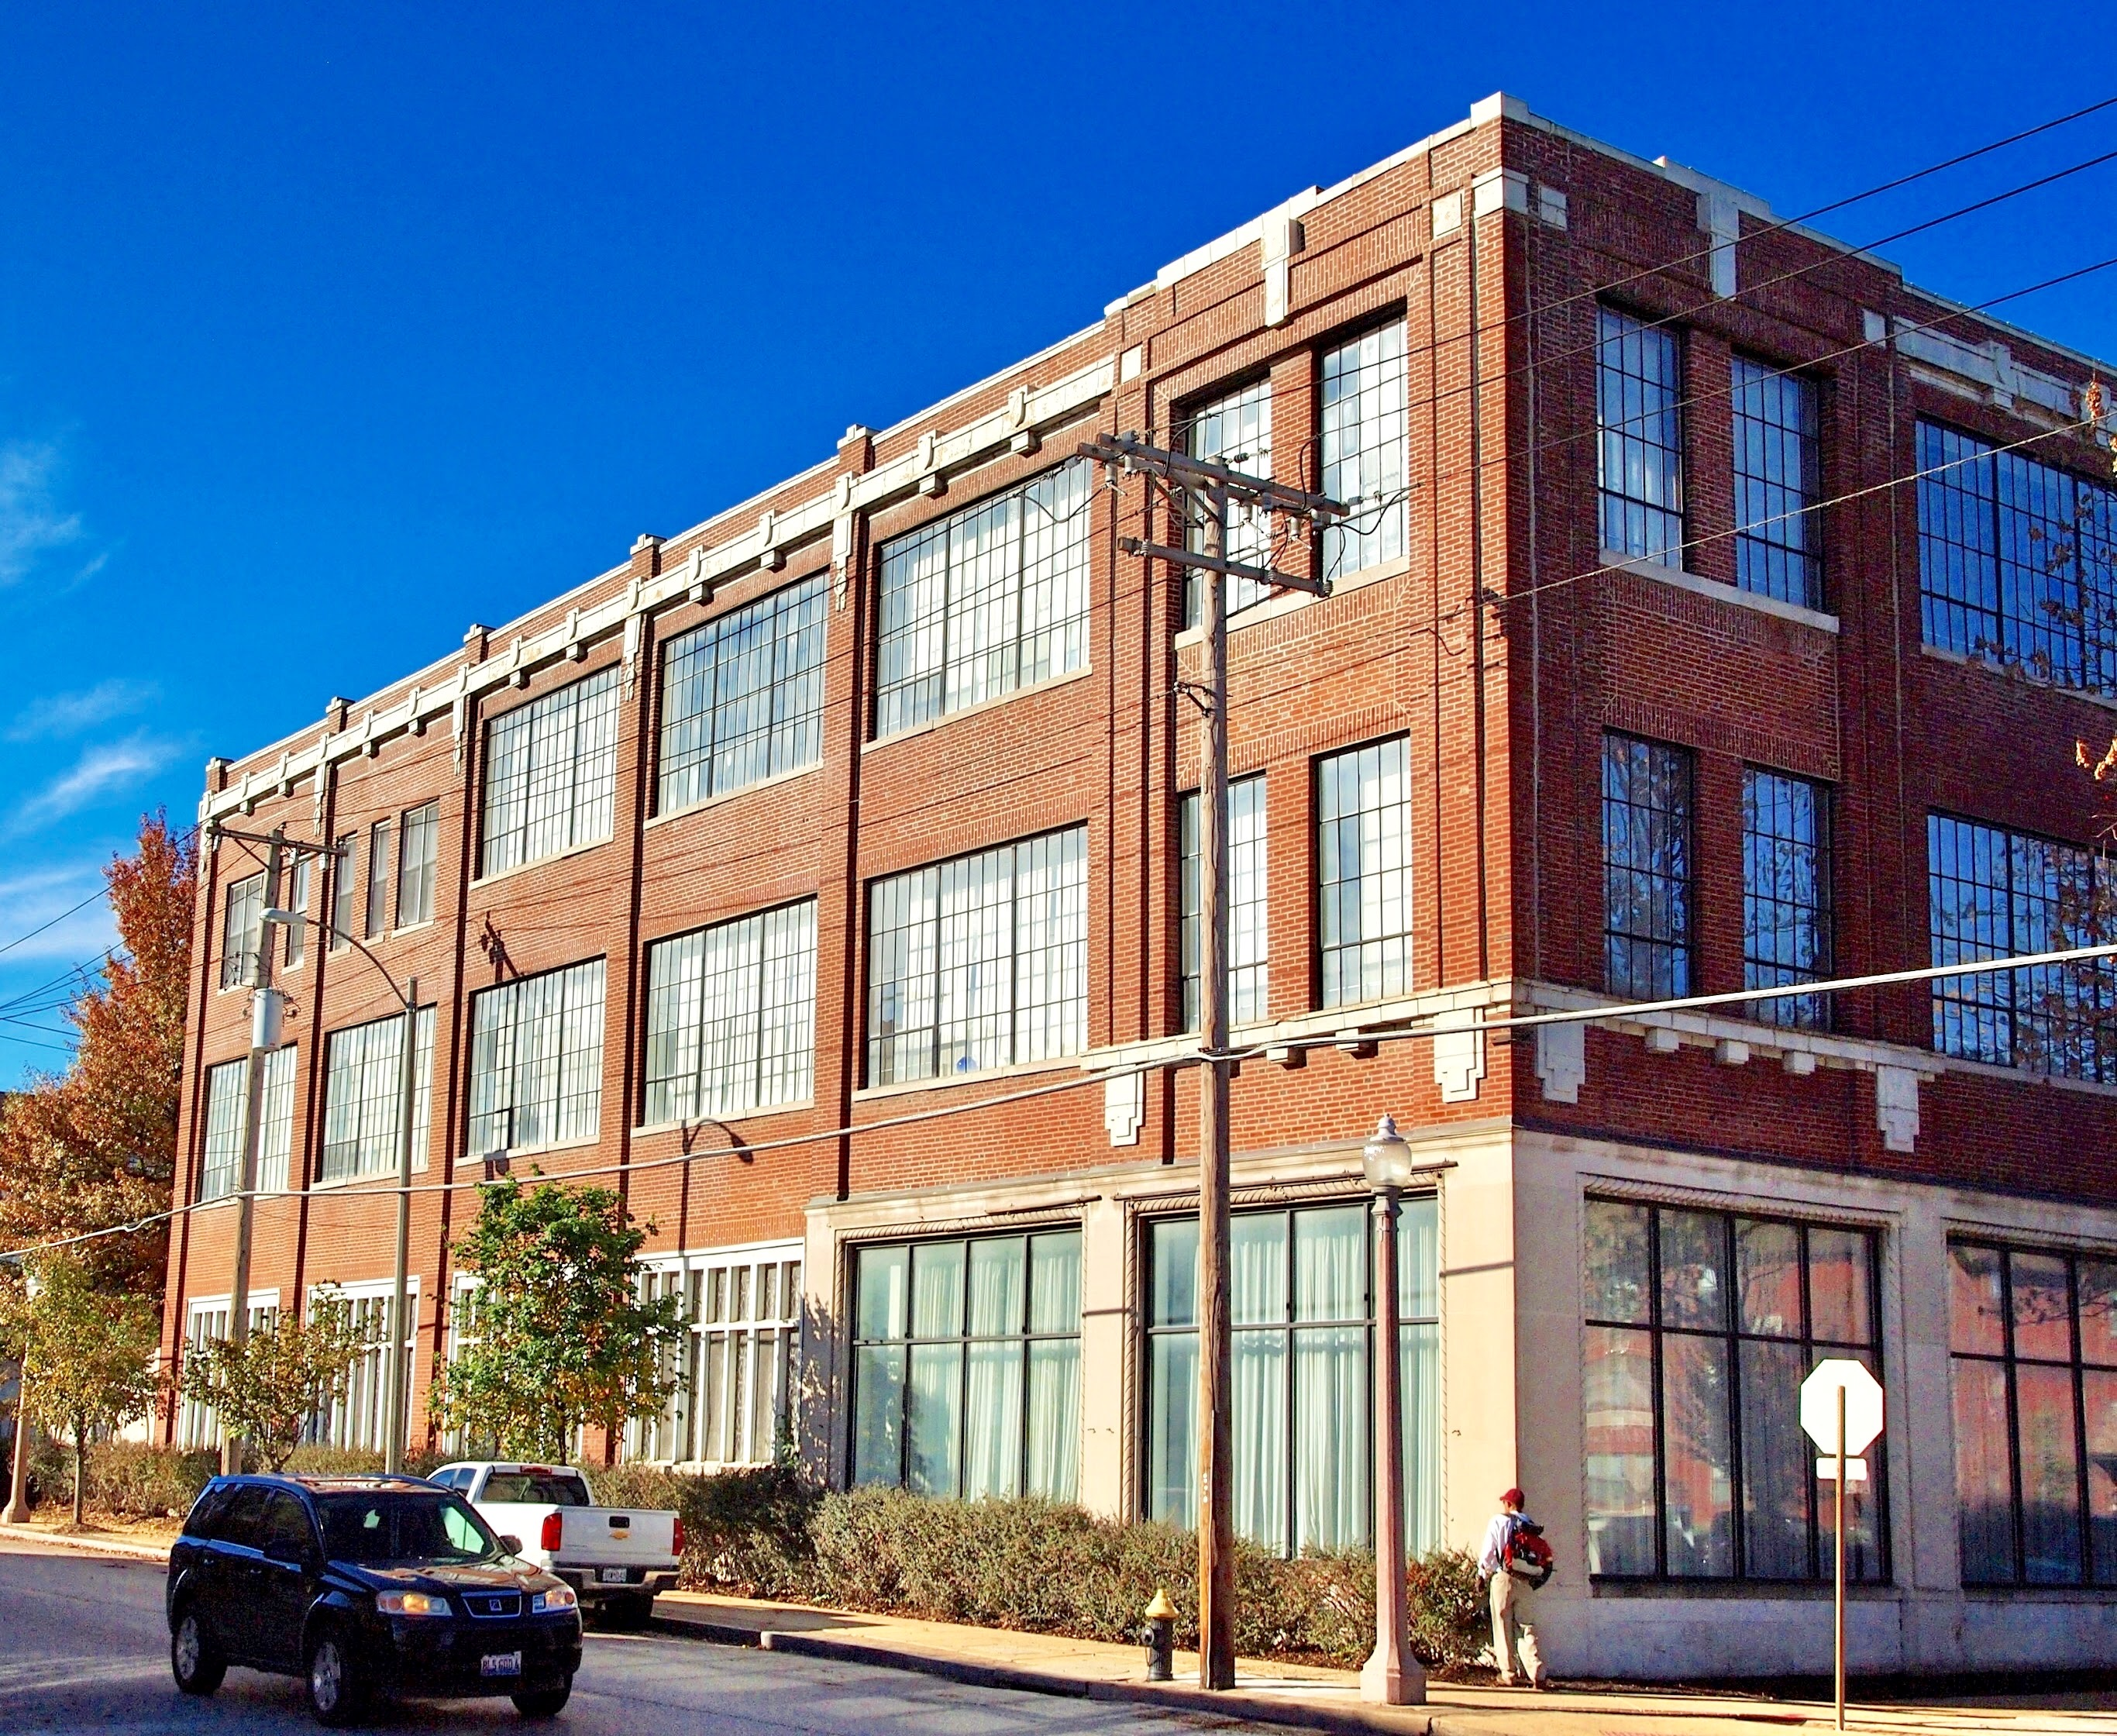 The Dorris Lofts